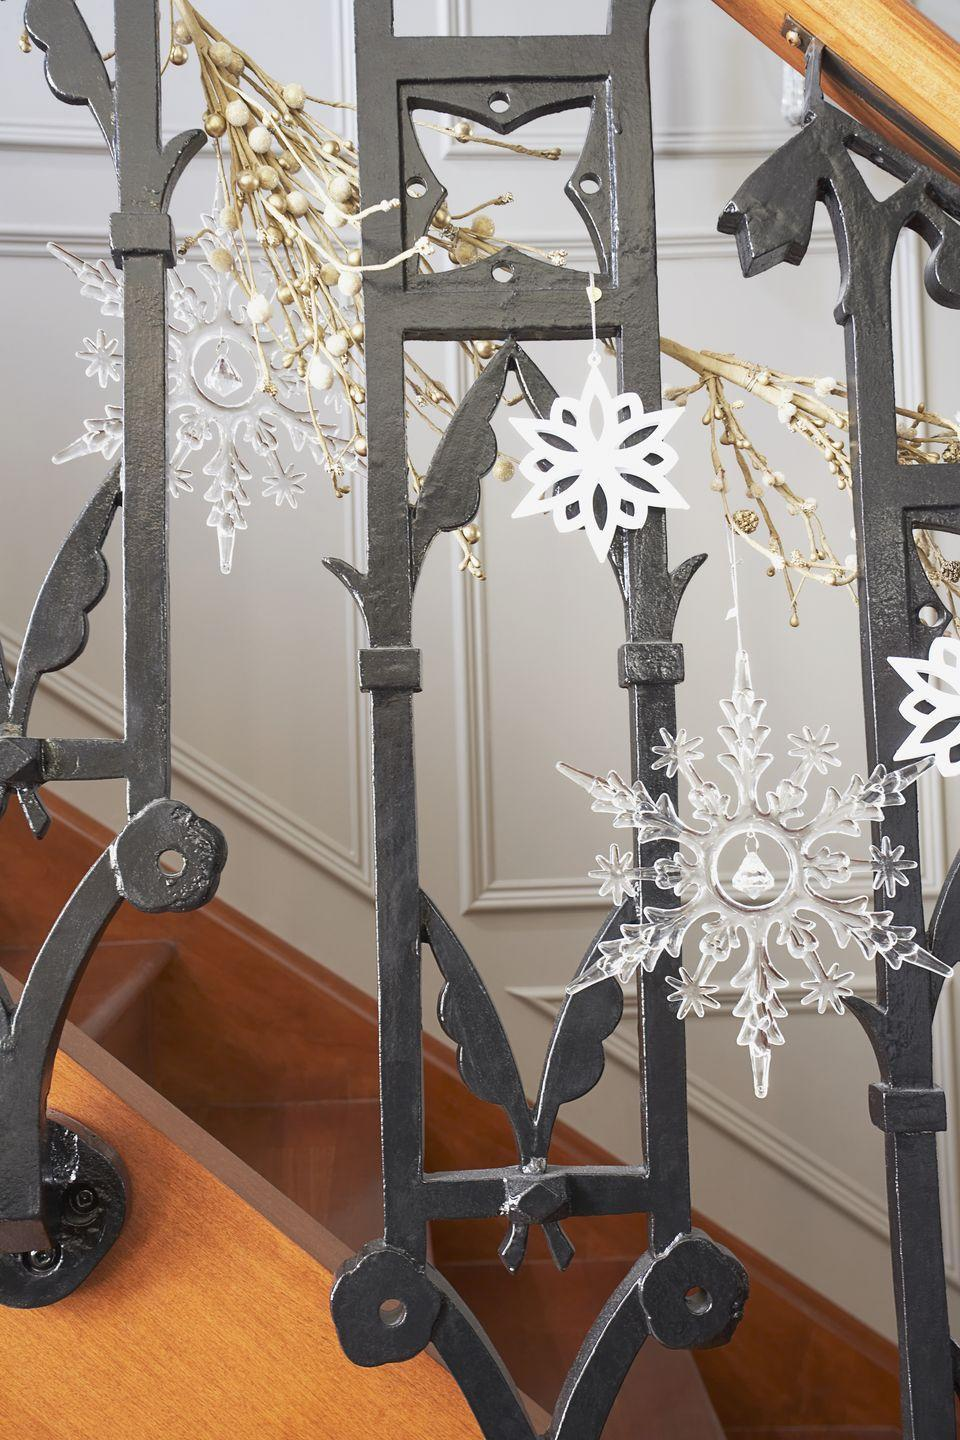 """<p>If you have dark-colored or iron spindles, a smattering of snowflakes dangling at different heights provides the perfect bannister contrast. </p><p><a class=""""link rapid-noclick-resp"""" href=""""https://www.amazon.com/Whaline-Decorations-Snowflake-Ornaments-Accessories/dp/B07Z67SFCN?tag=syn-yahoo-20&ascsubtag=%5Bartid%7C10072.g.34479907%5Bsrc%7Cyahoo-us"""" rel=""""nofollow noopener"""" target=""""_blank"""" data-ylk=""""slk:SHOP SNOWFLAKE DECORATIONS"""">SHOP SNOWFLAKE DECORATIONS</a></p>"""